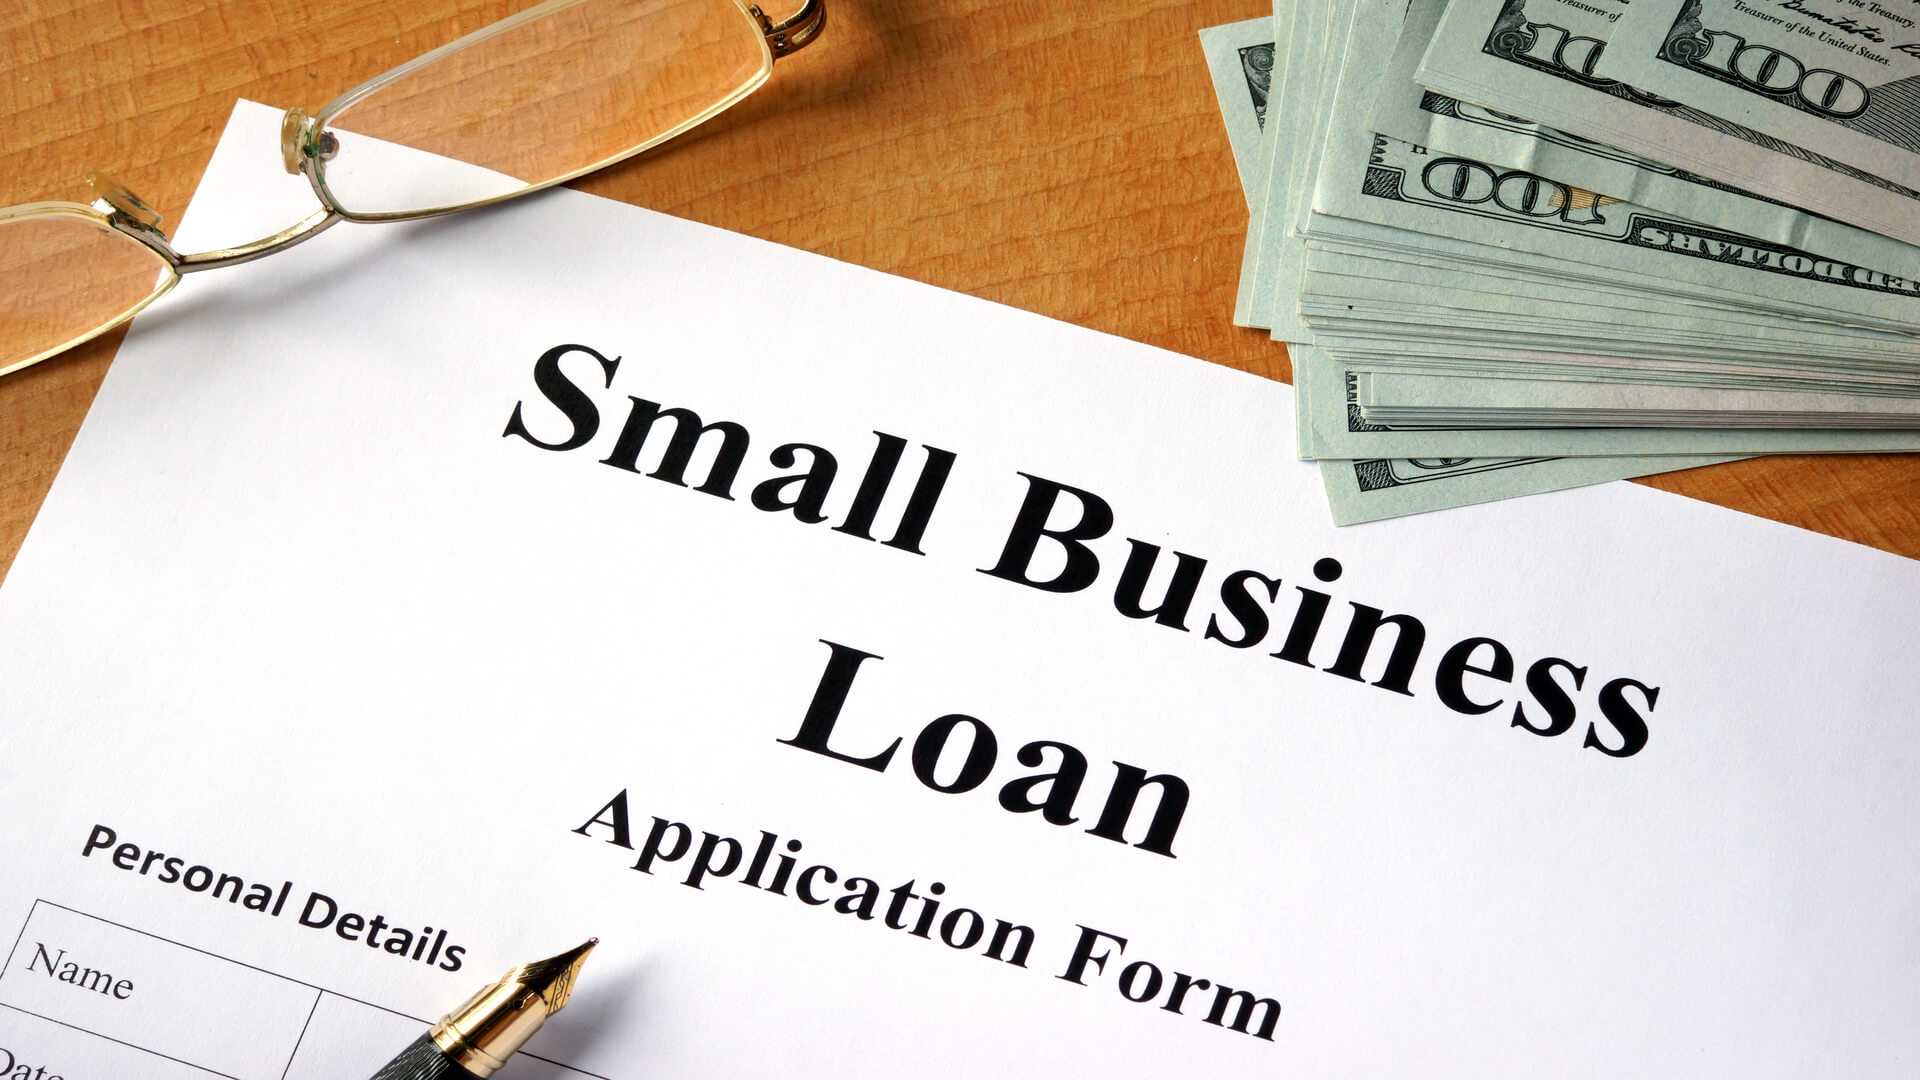 Small business loan form .